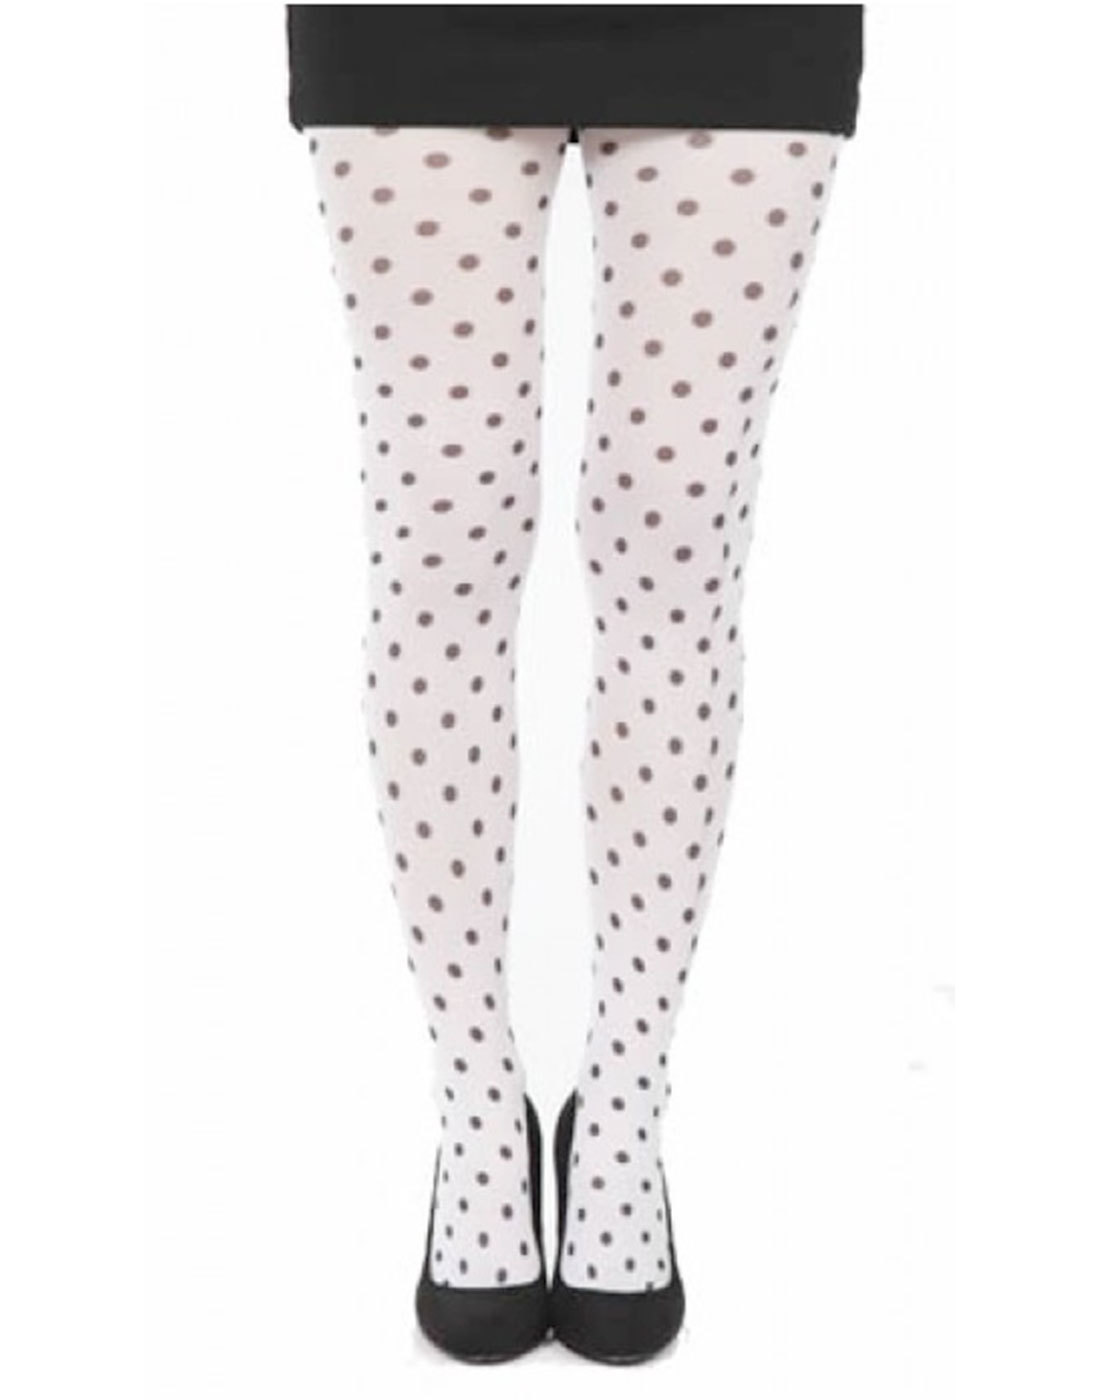 + PAMELA MANN Retro 60s Mod Polka Dot Tights White